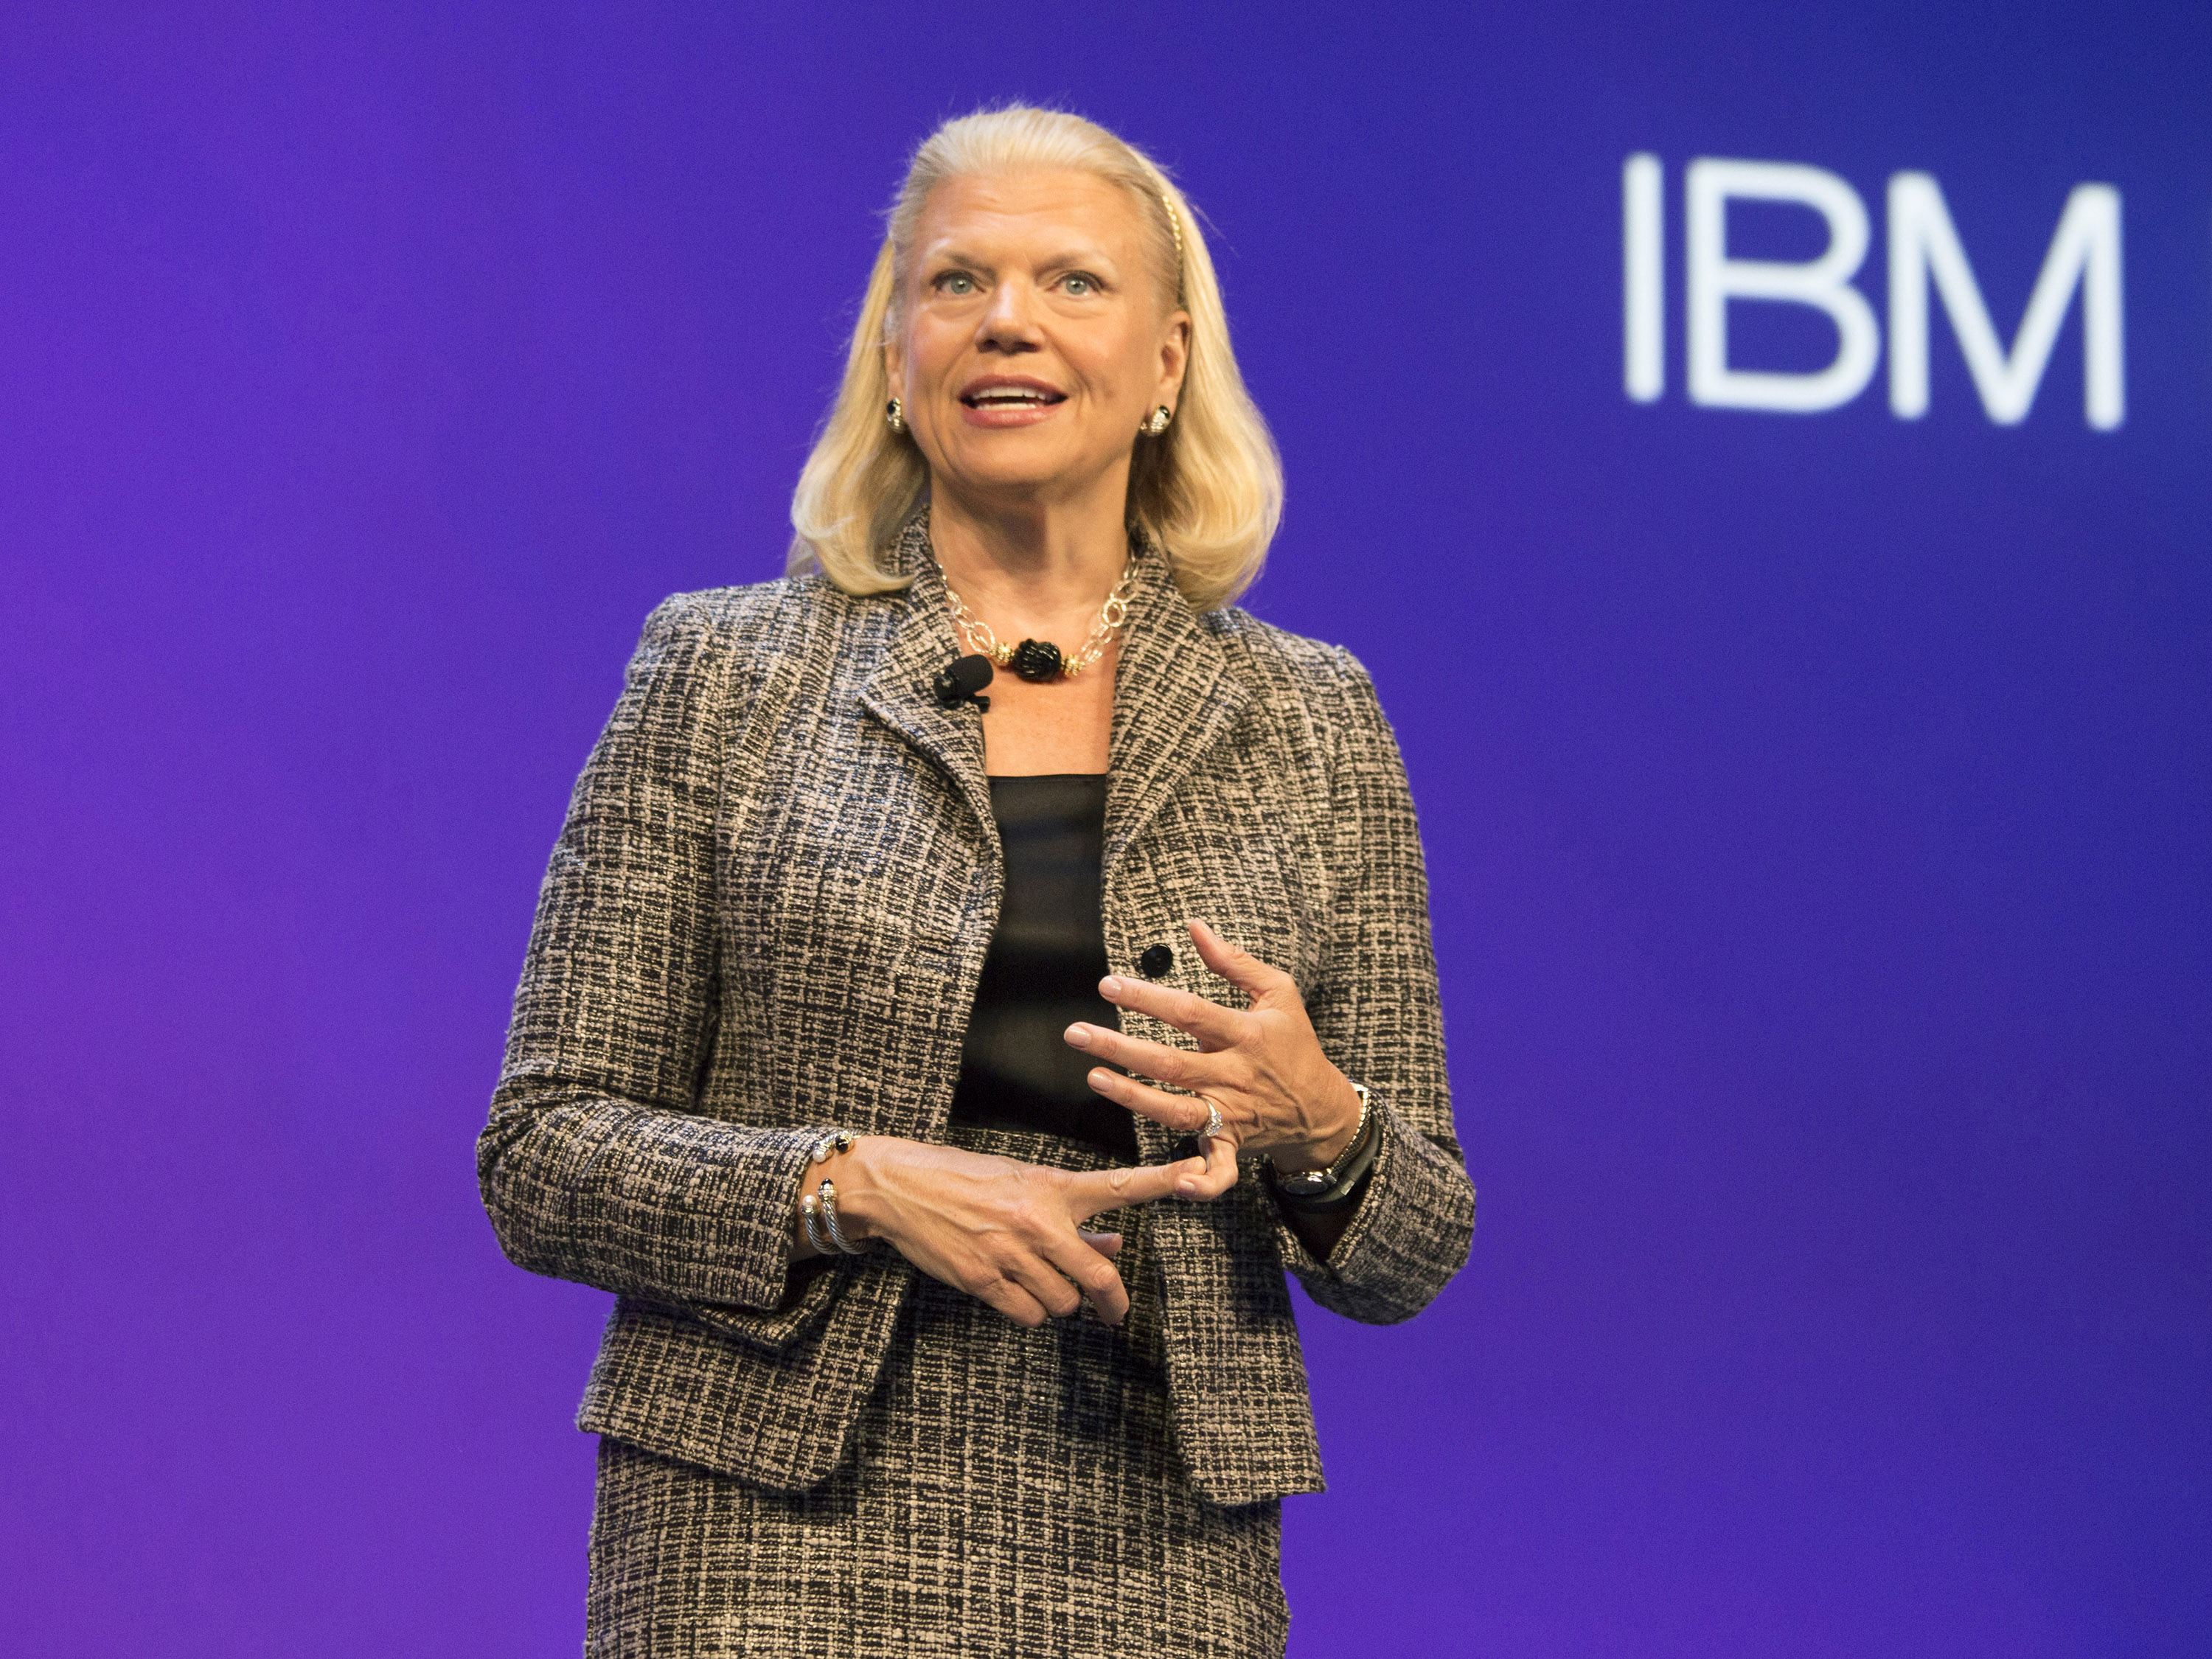 IBM CEO DISCUSSES BUSINESS PARTNER ROLE IN THE COGNITIVE ERA